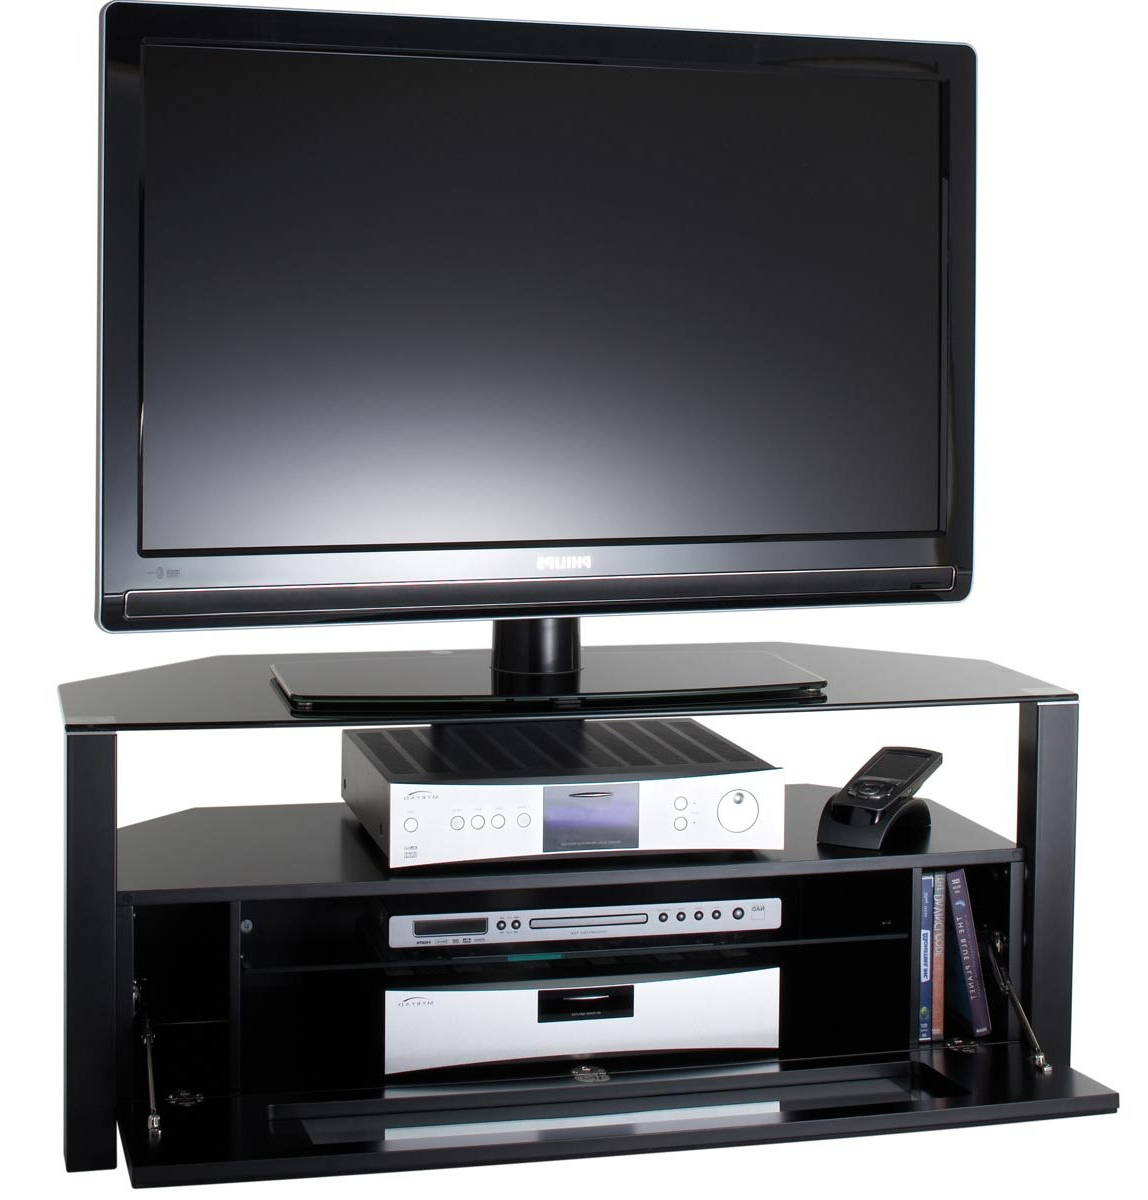 Alphason Abrd1100 Blk Tv Stands With Regard To Current Alphason Tv Cabinets (View 3 of 20)